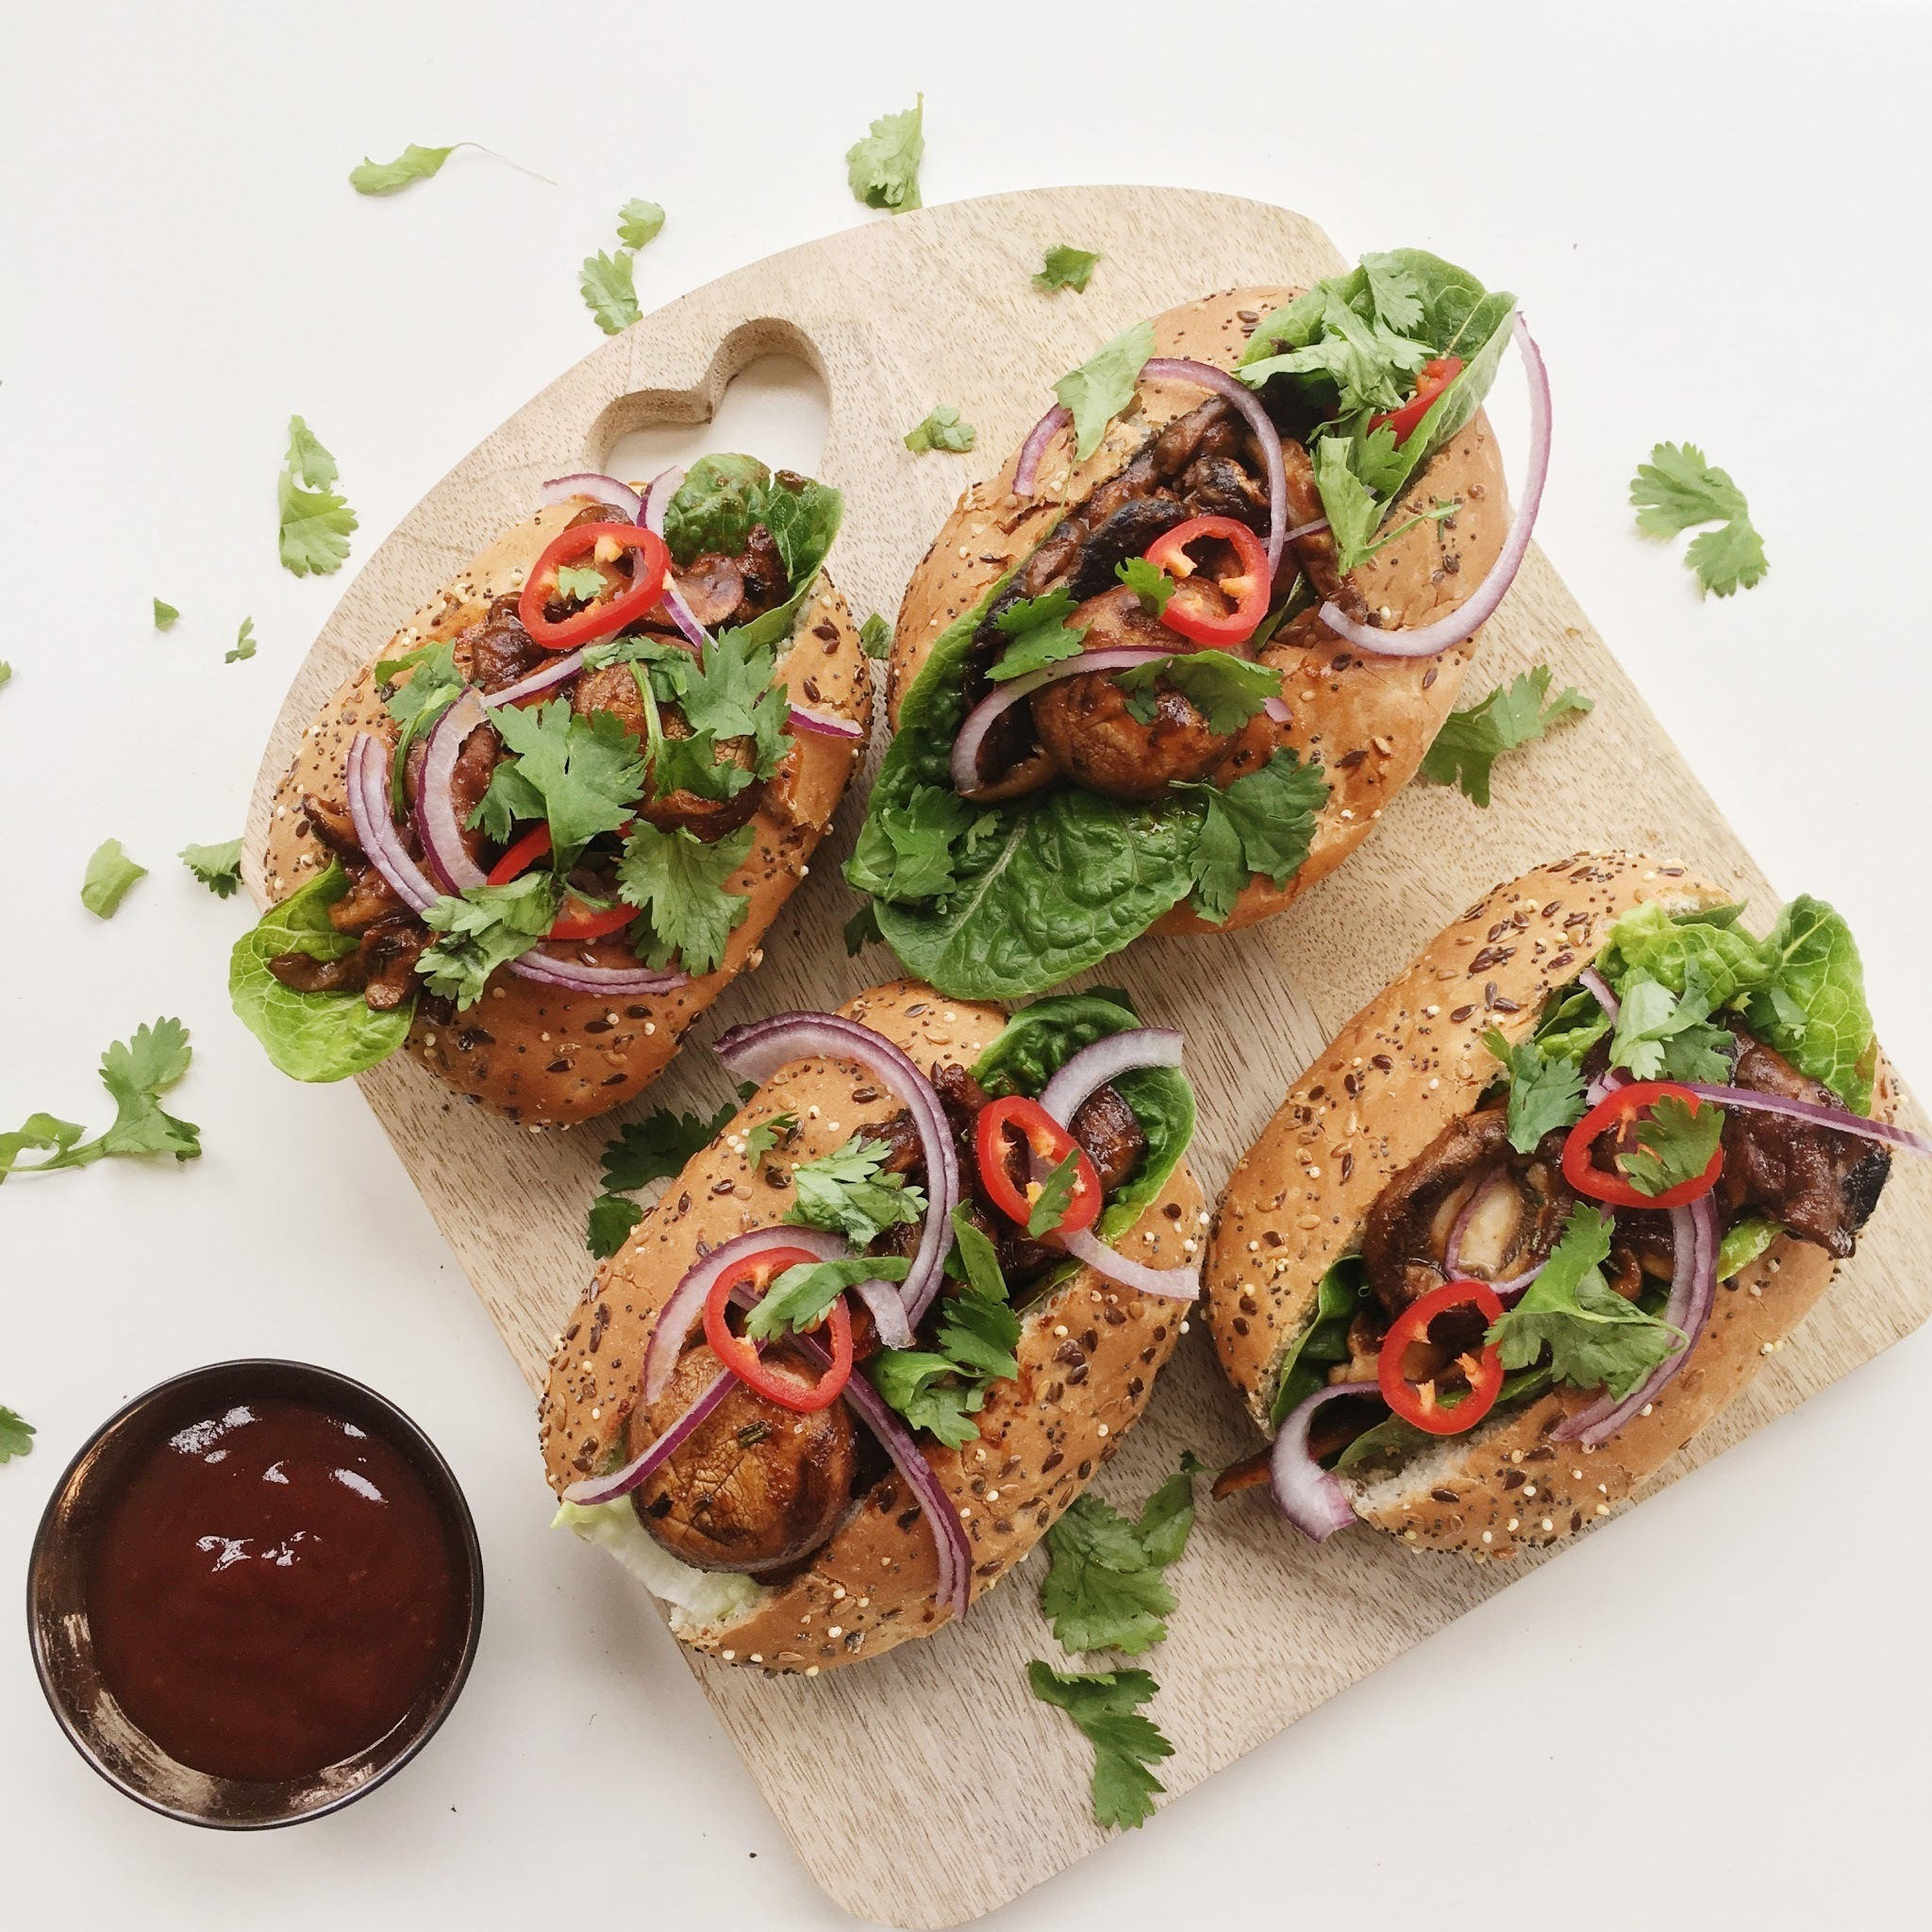 Introducing Food Love Stories by Tesco & a Vegan BBQ 'Shroom Buns Recipe